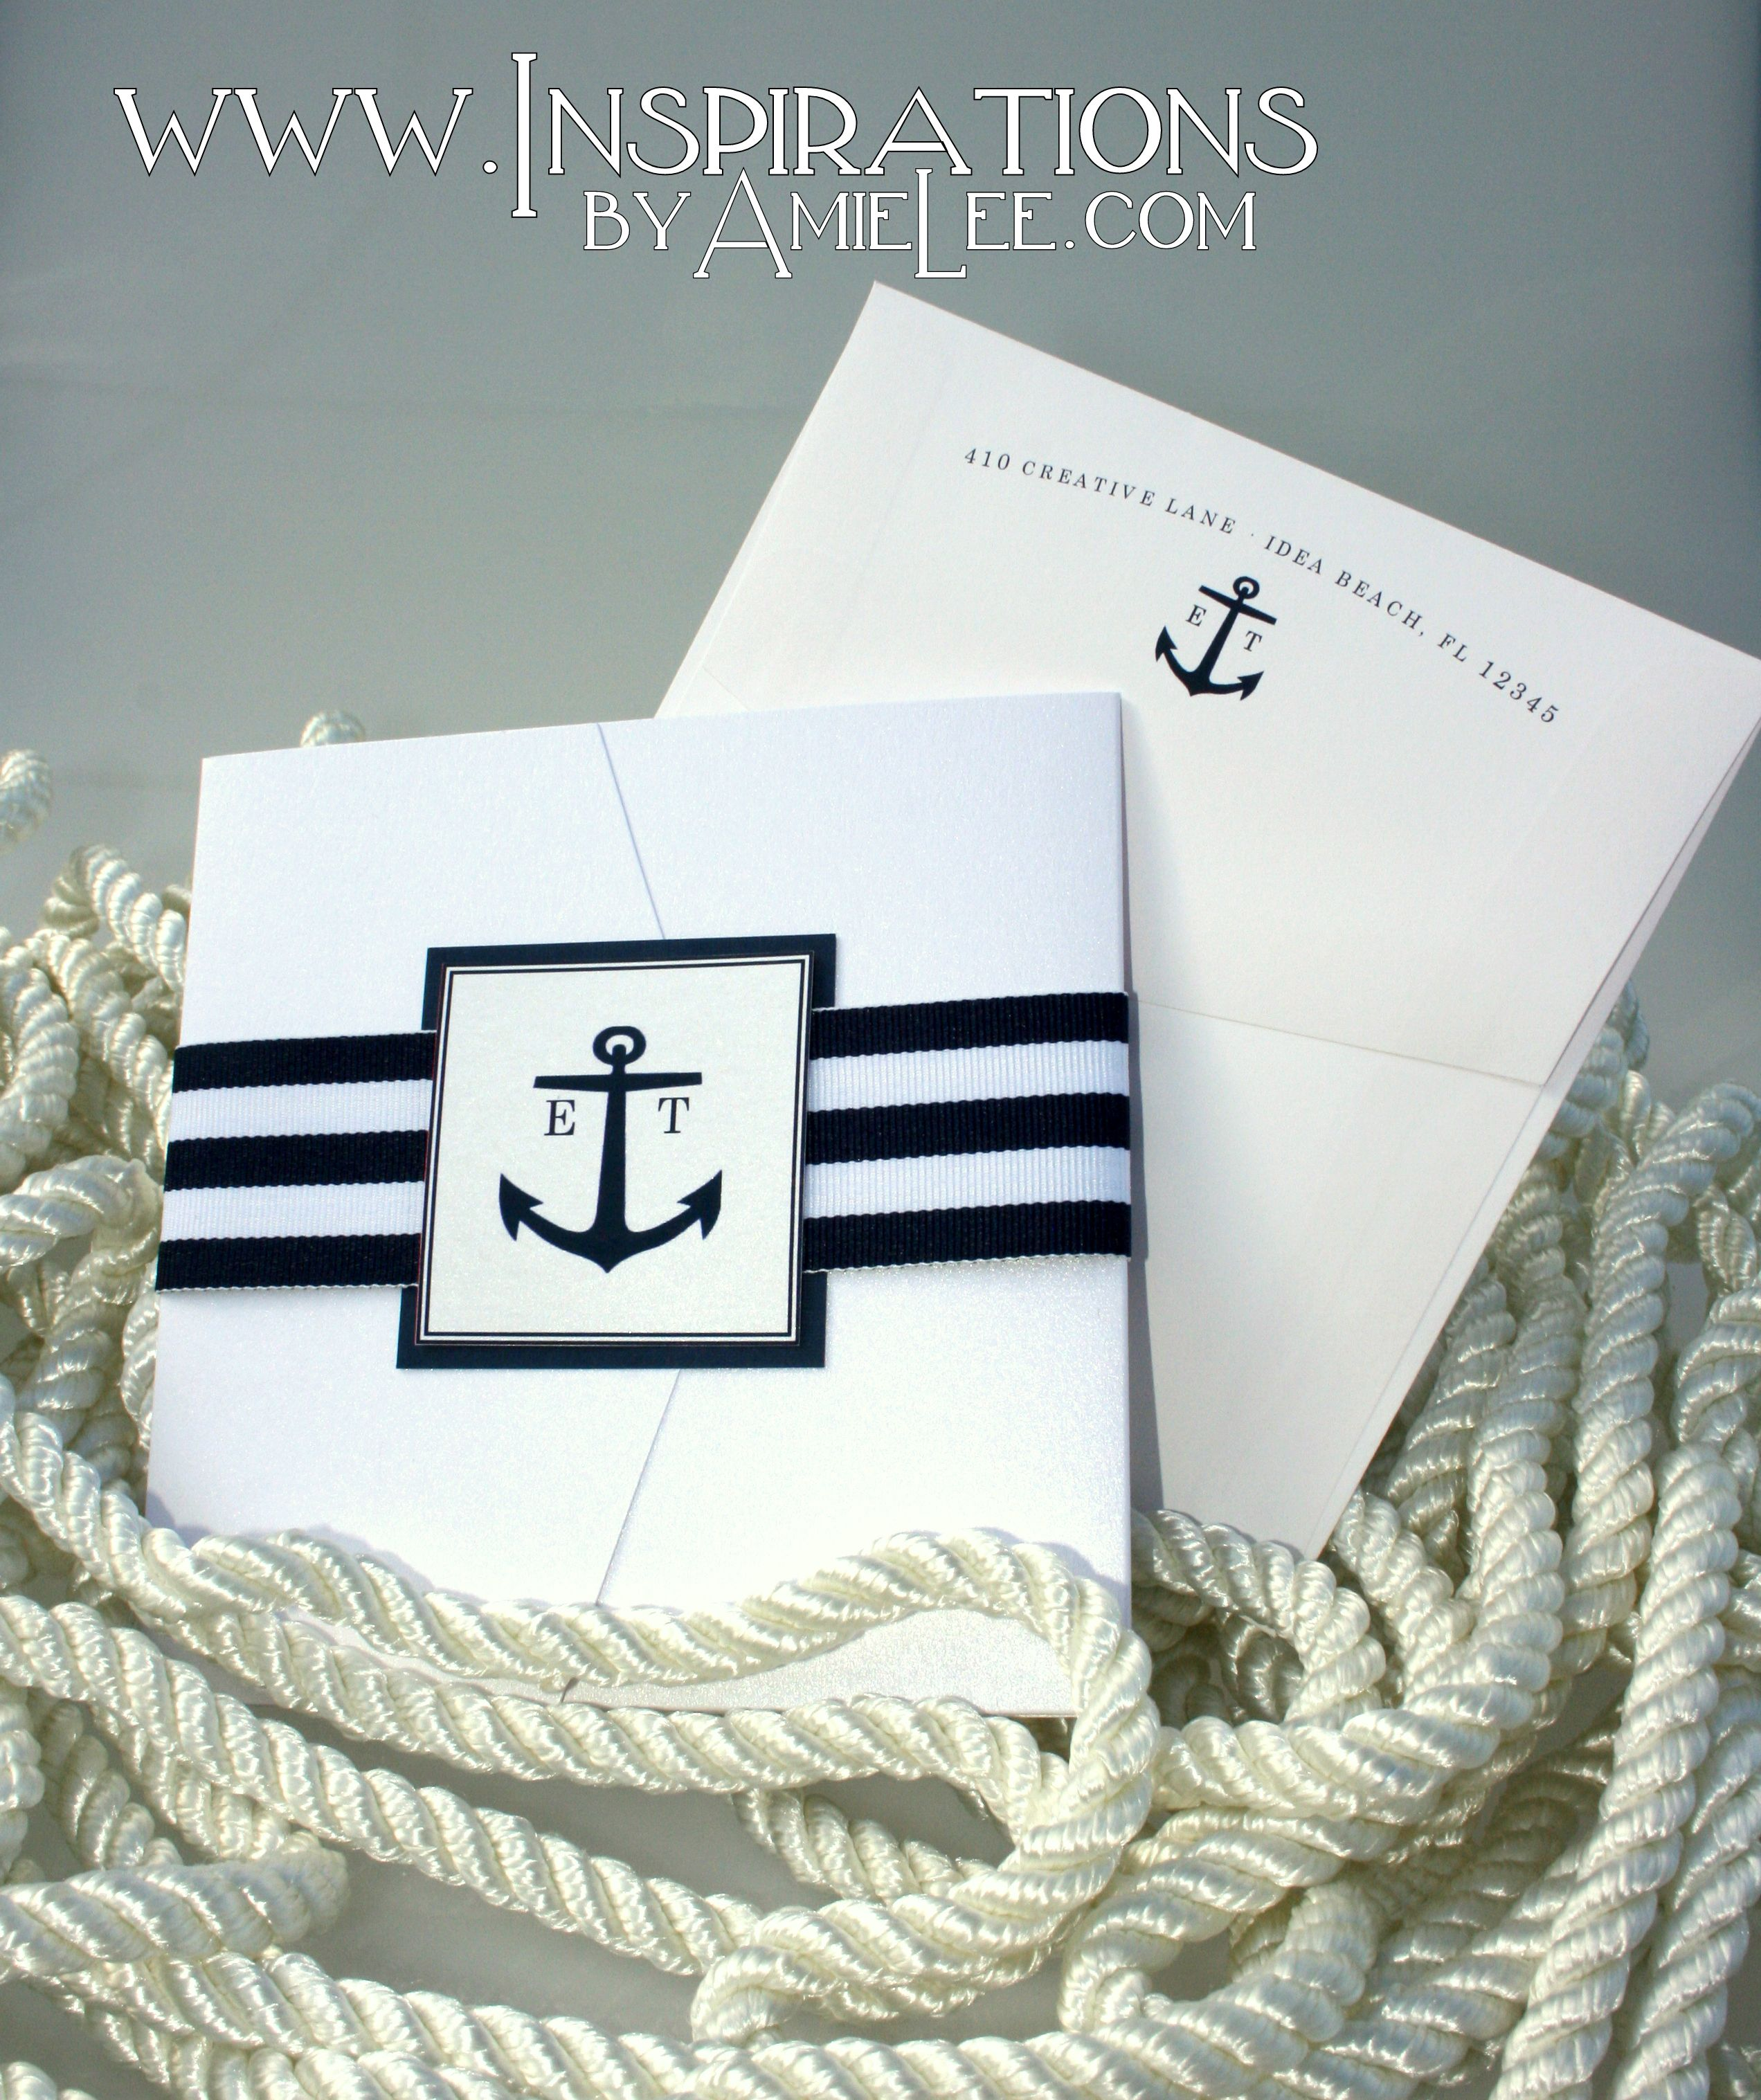 Nautical sunset invitations with ribbon bands.